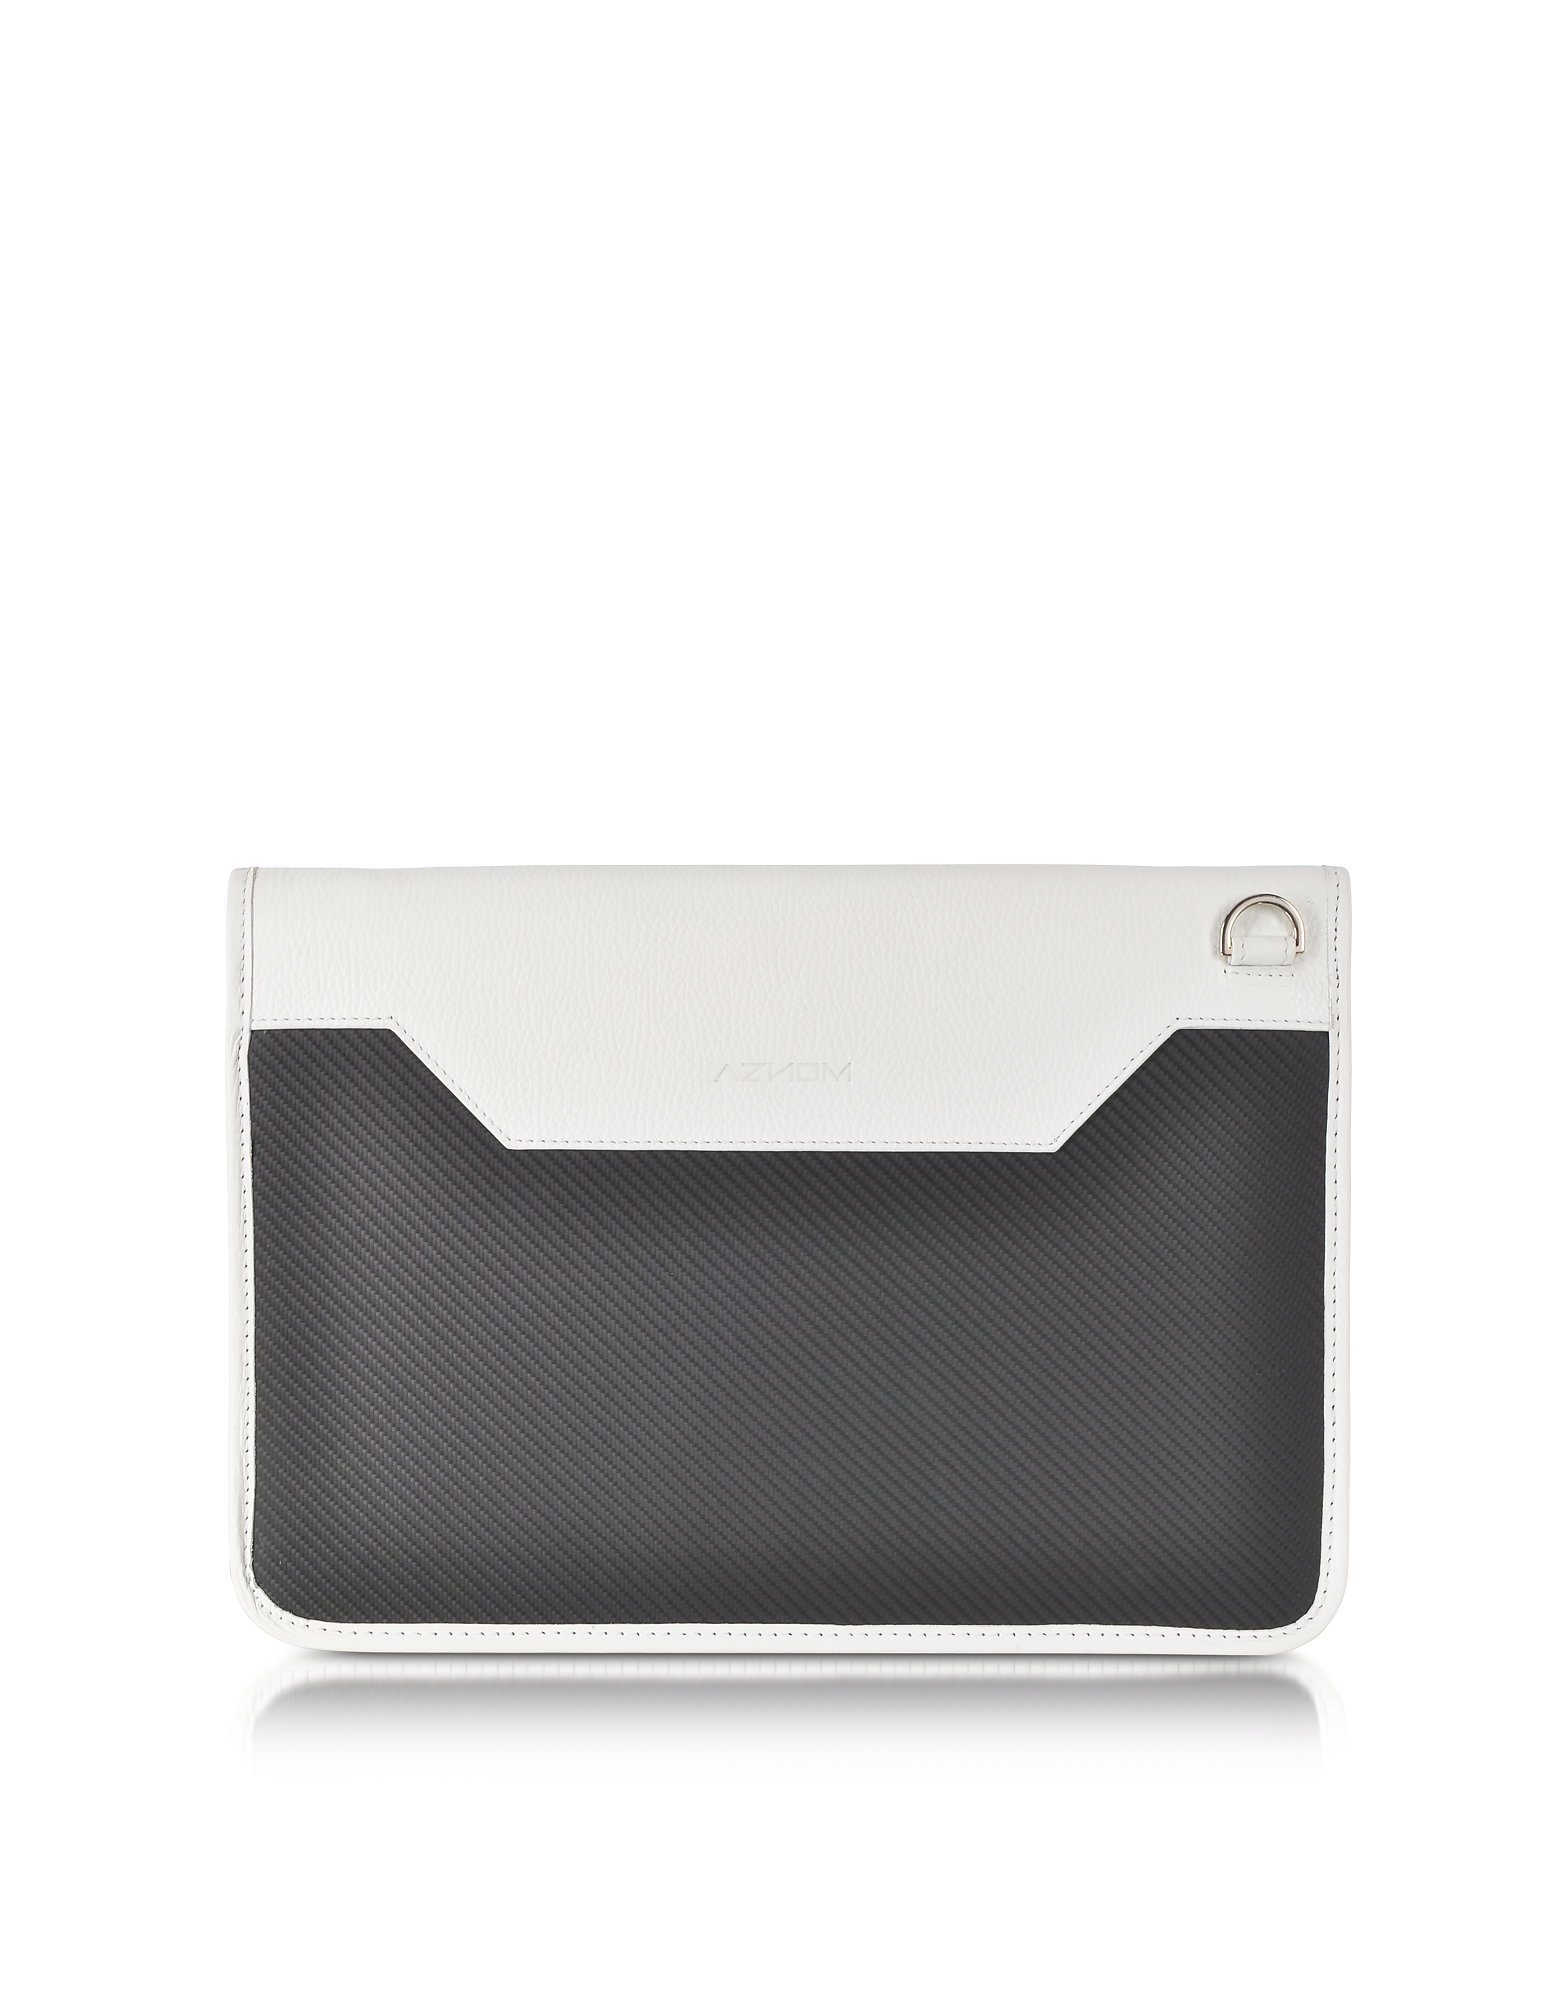 Aznom Briefcases, Document Holder iPad Briefcase